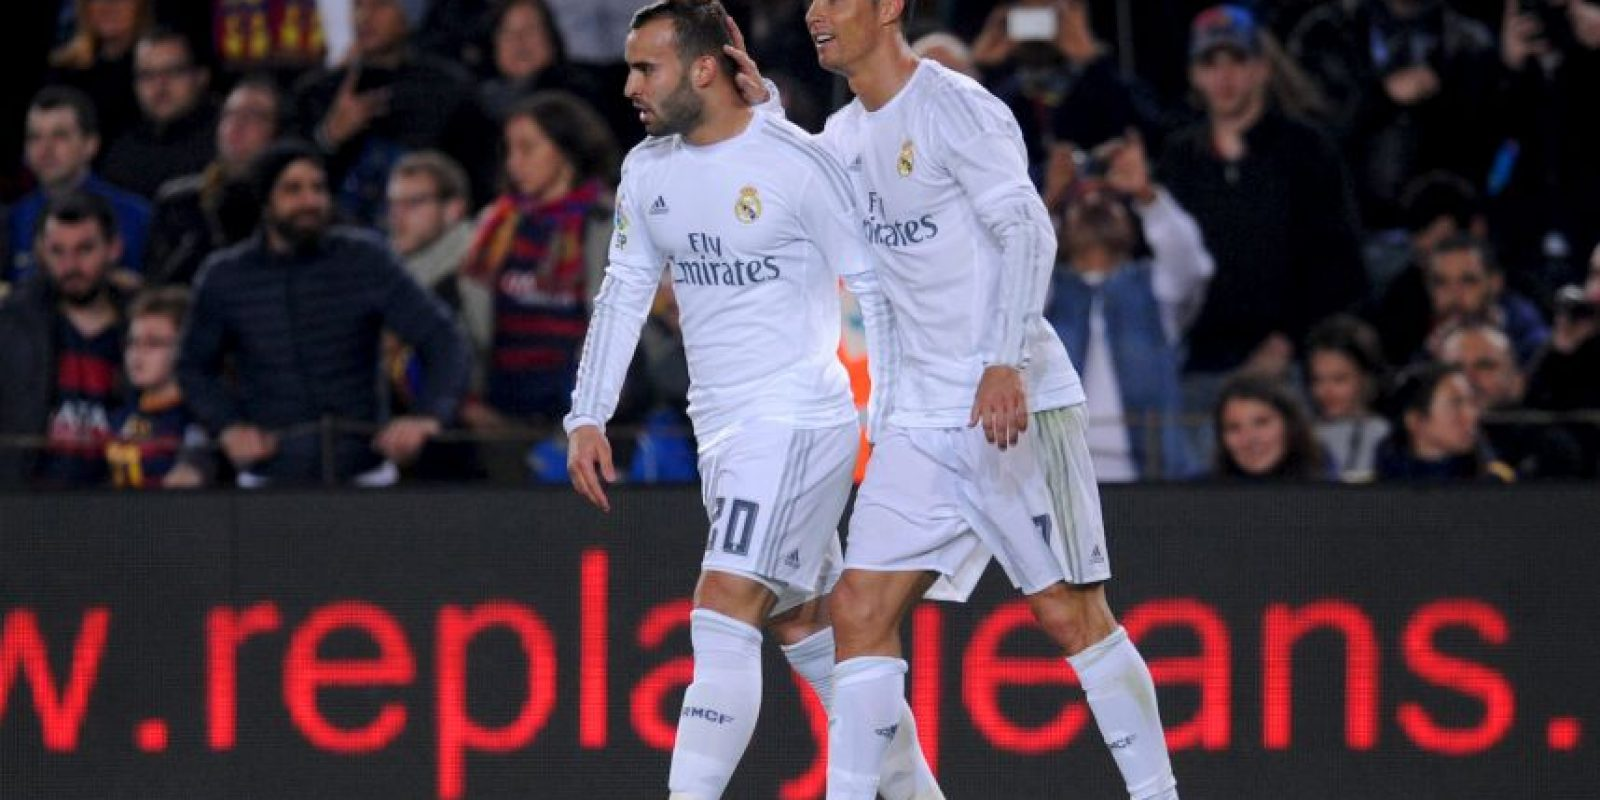 Wolfsburgo vs. Real Madrid Foto: Getty Images